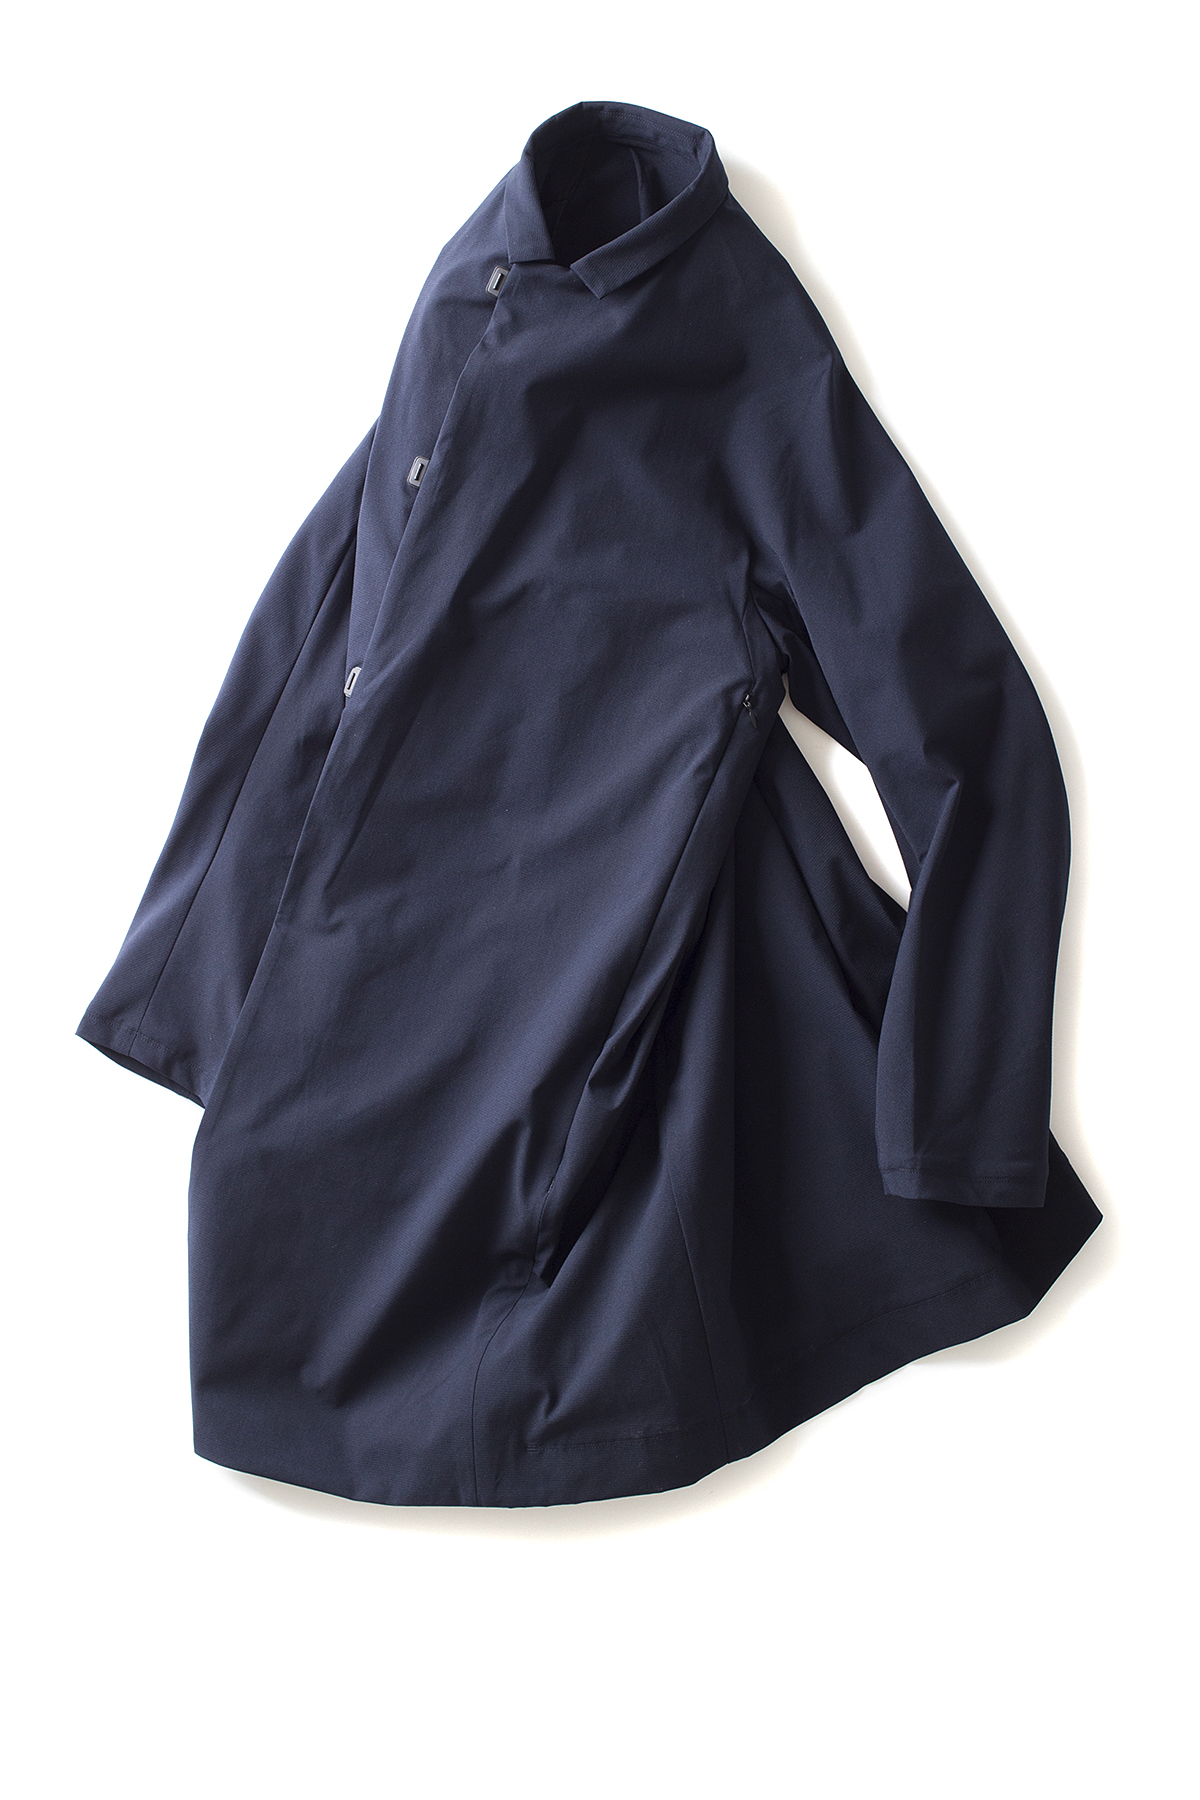 TEATORA : Wallet Coat FF (Navy)